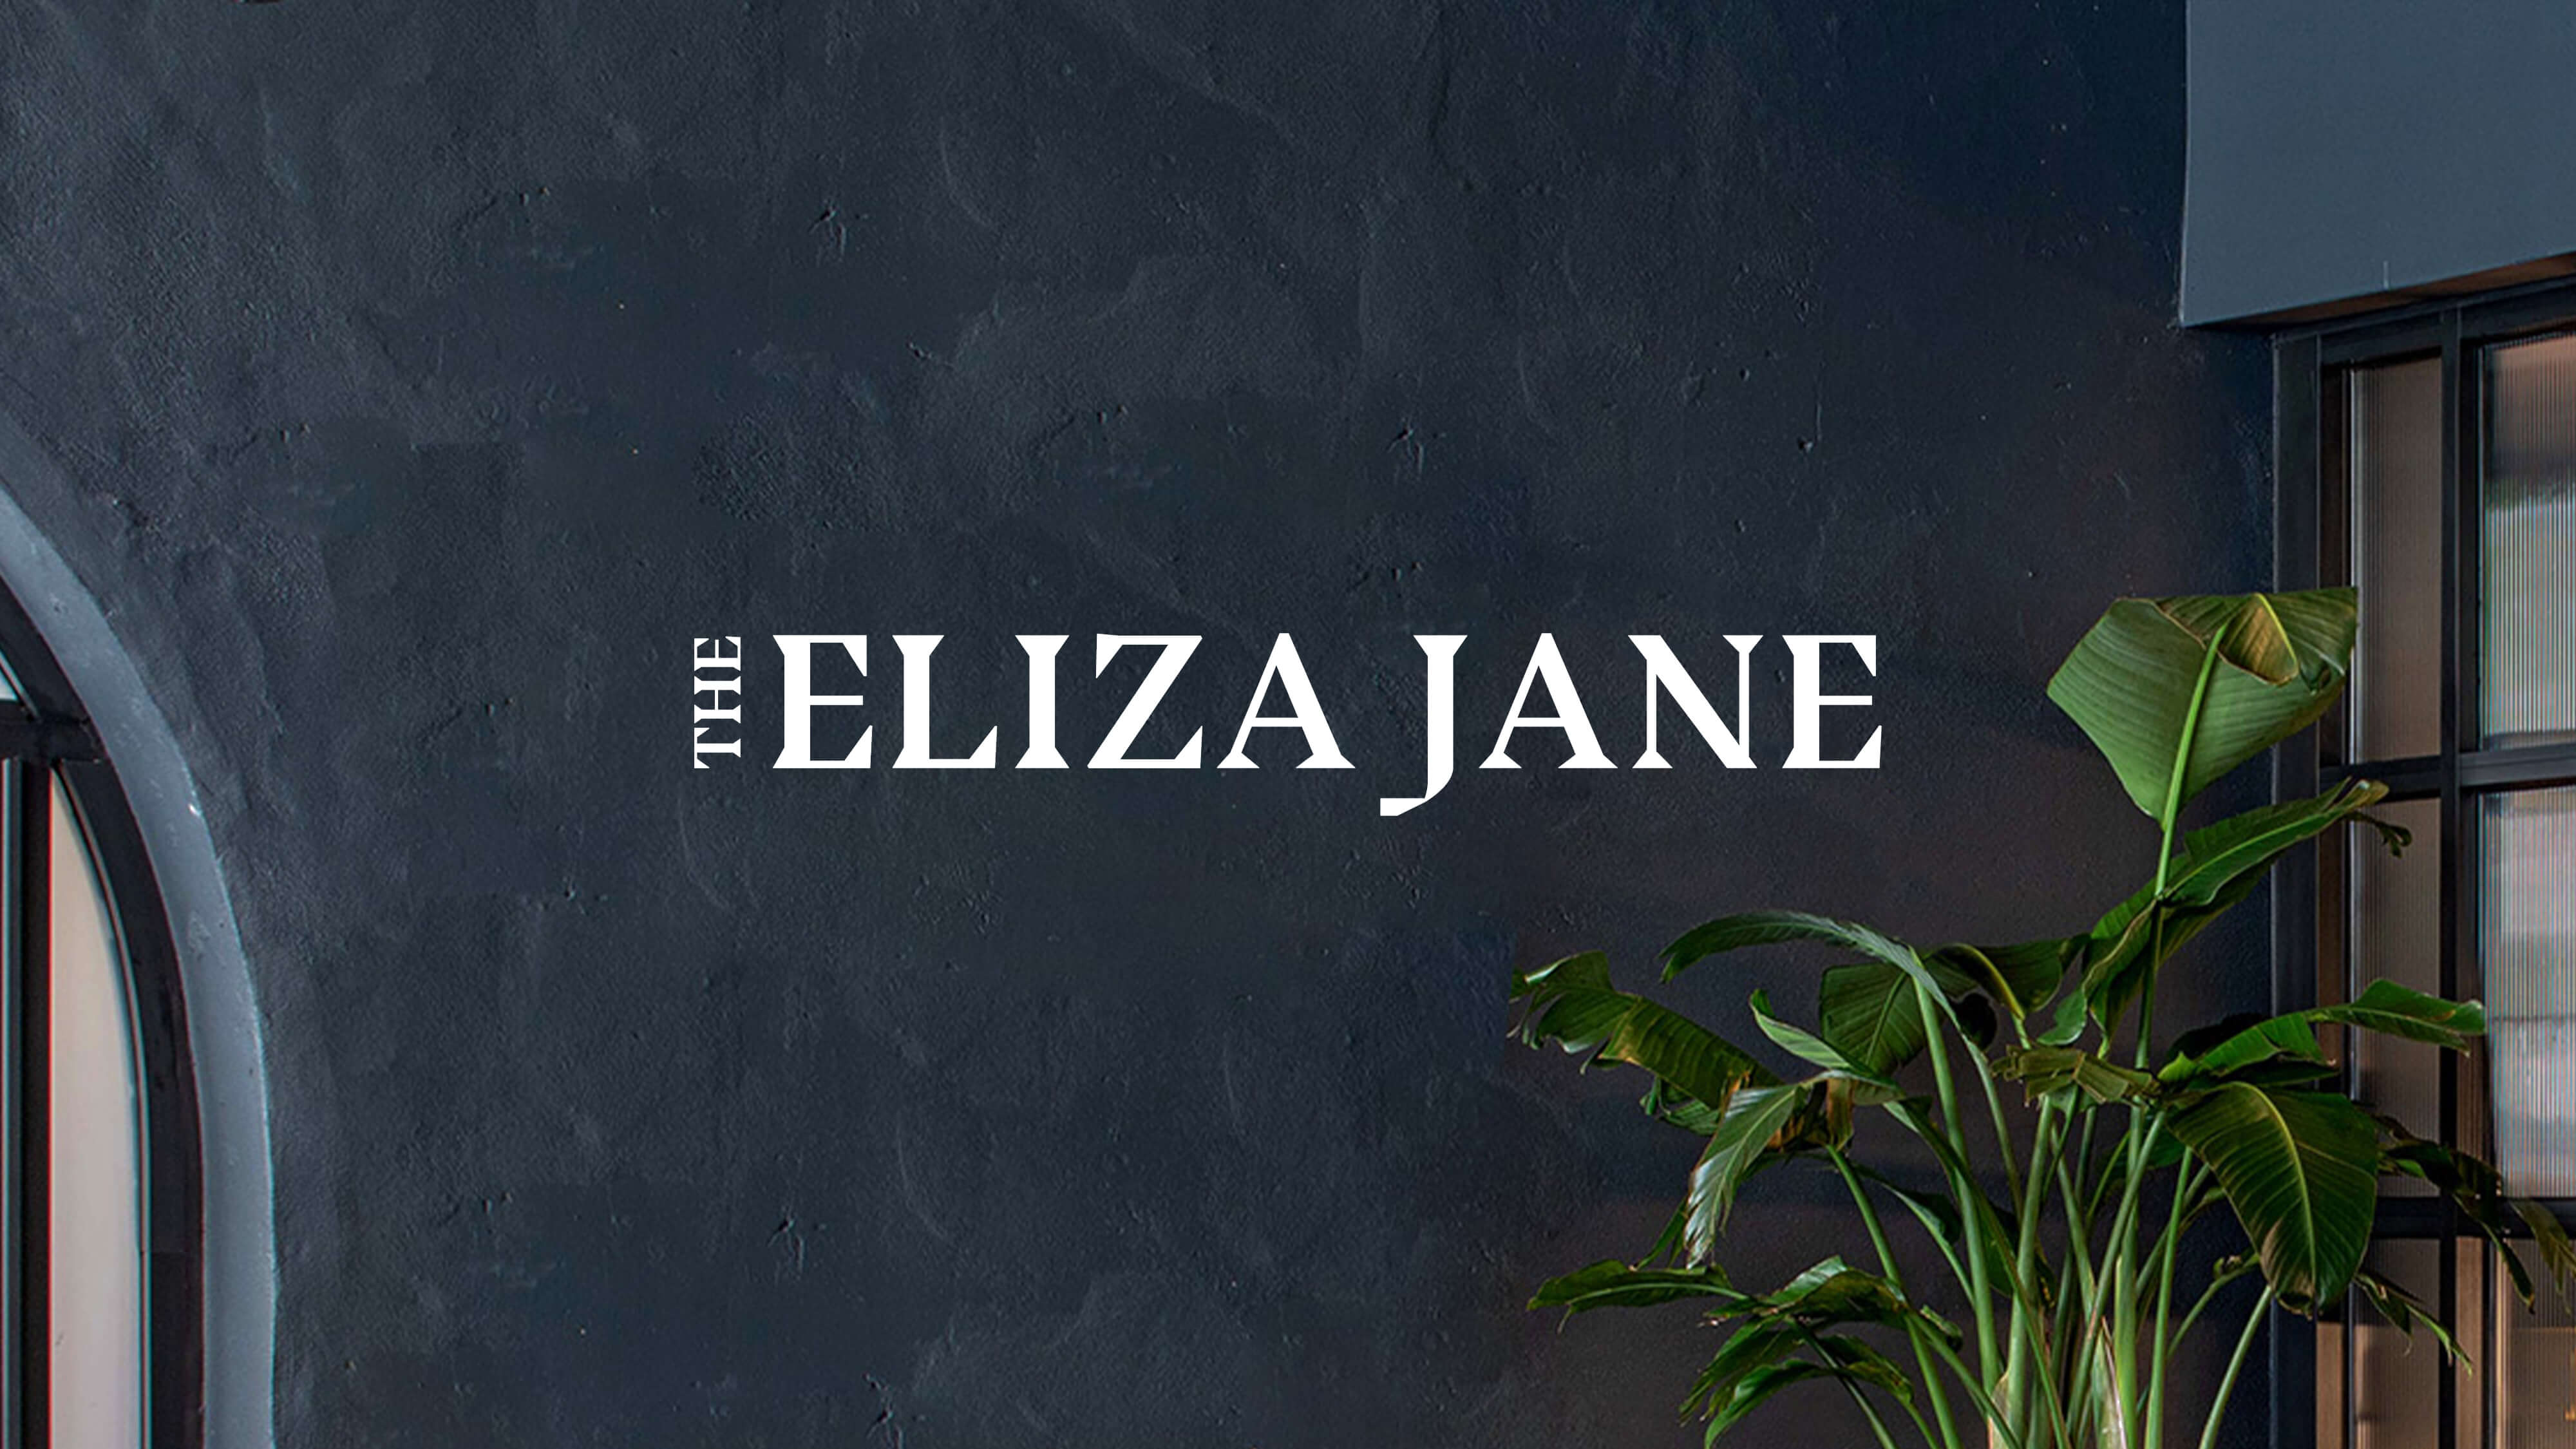 The Liz logo overlayed on a photo featuring green leaves in a simple vase